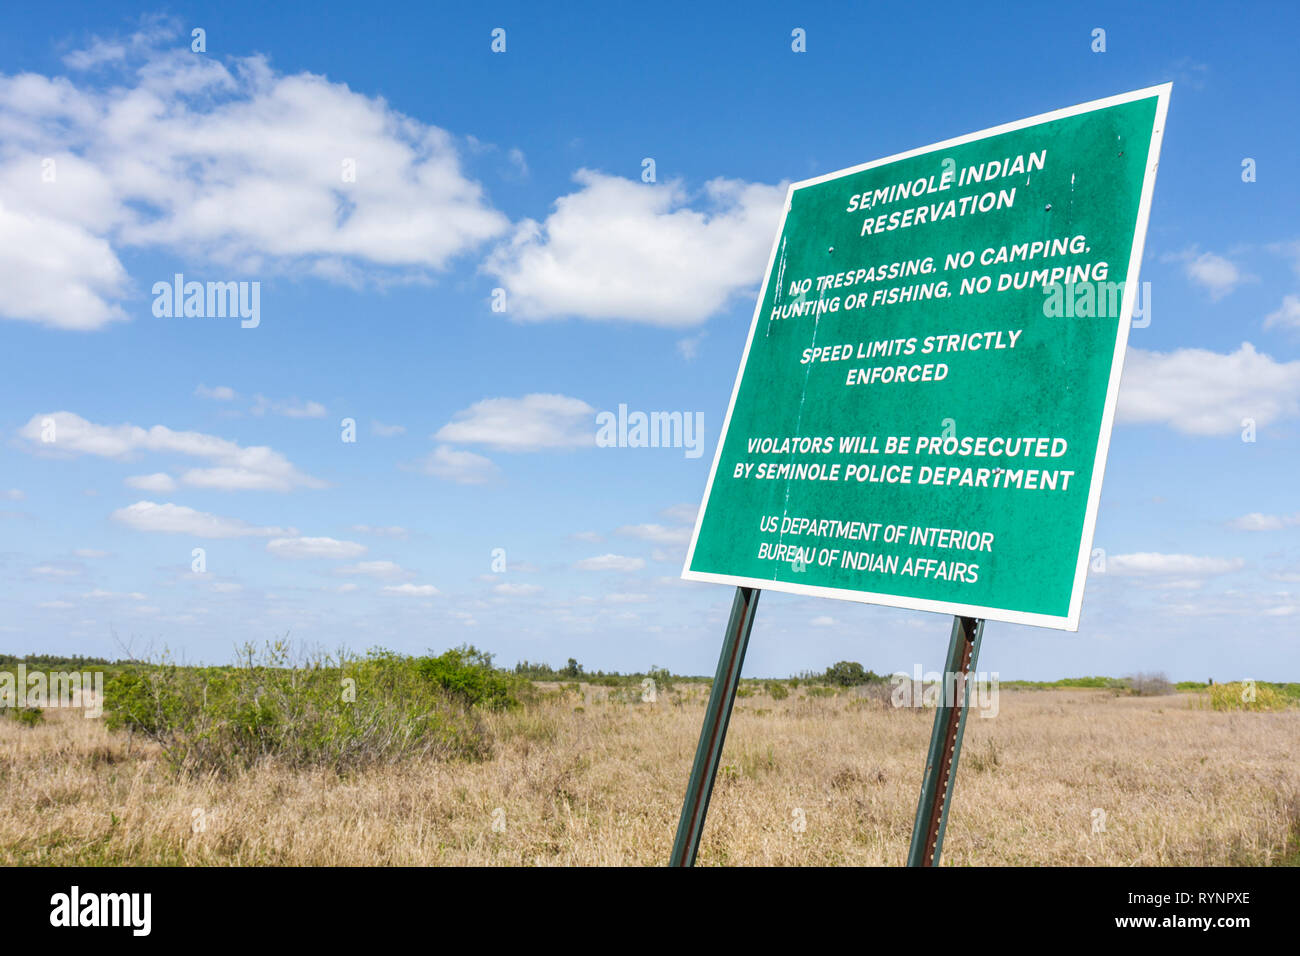 Florida, FL, South, Hendry County, Big Cypress, Seminole Indian Reservation, Native American Indian, Indian indigenous peoples, tribe, sign, logo, gre Stock Photo